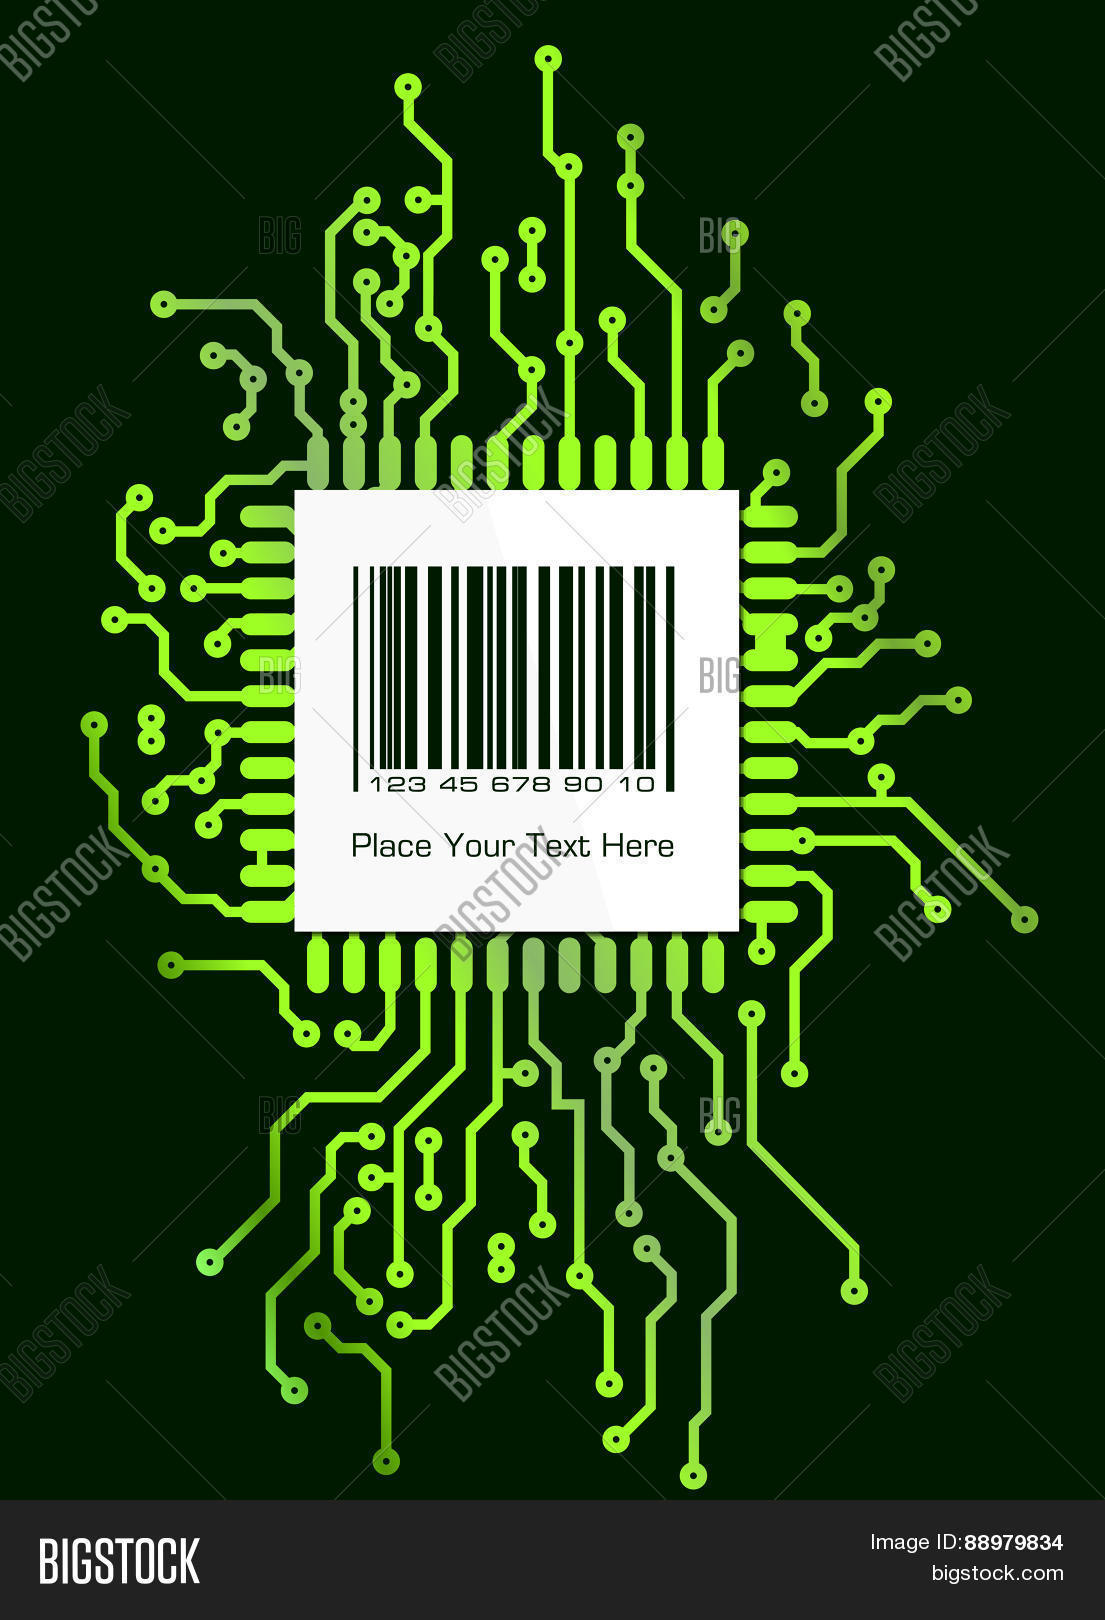 Barcode Label On Vector Photo Free Trial Bigstock Circuit Board Design Over Green Background Illustration In Pcb Layout Style For Your